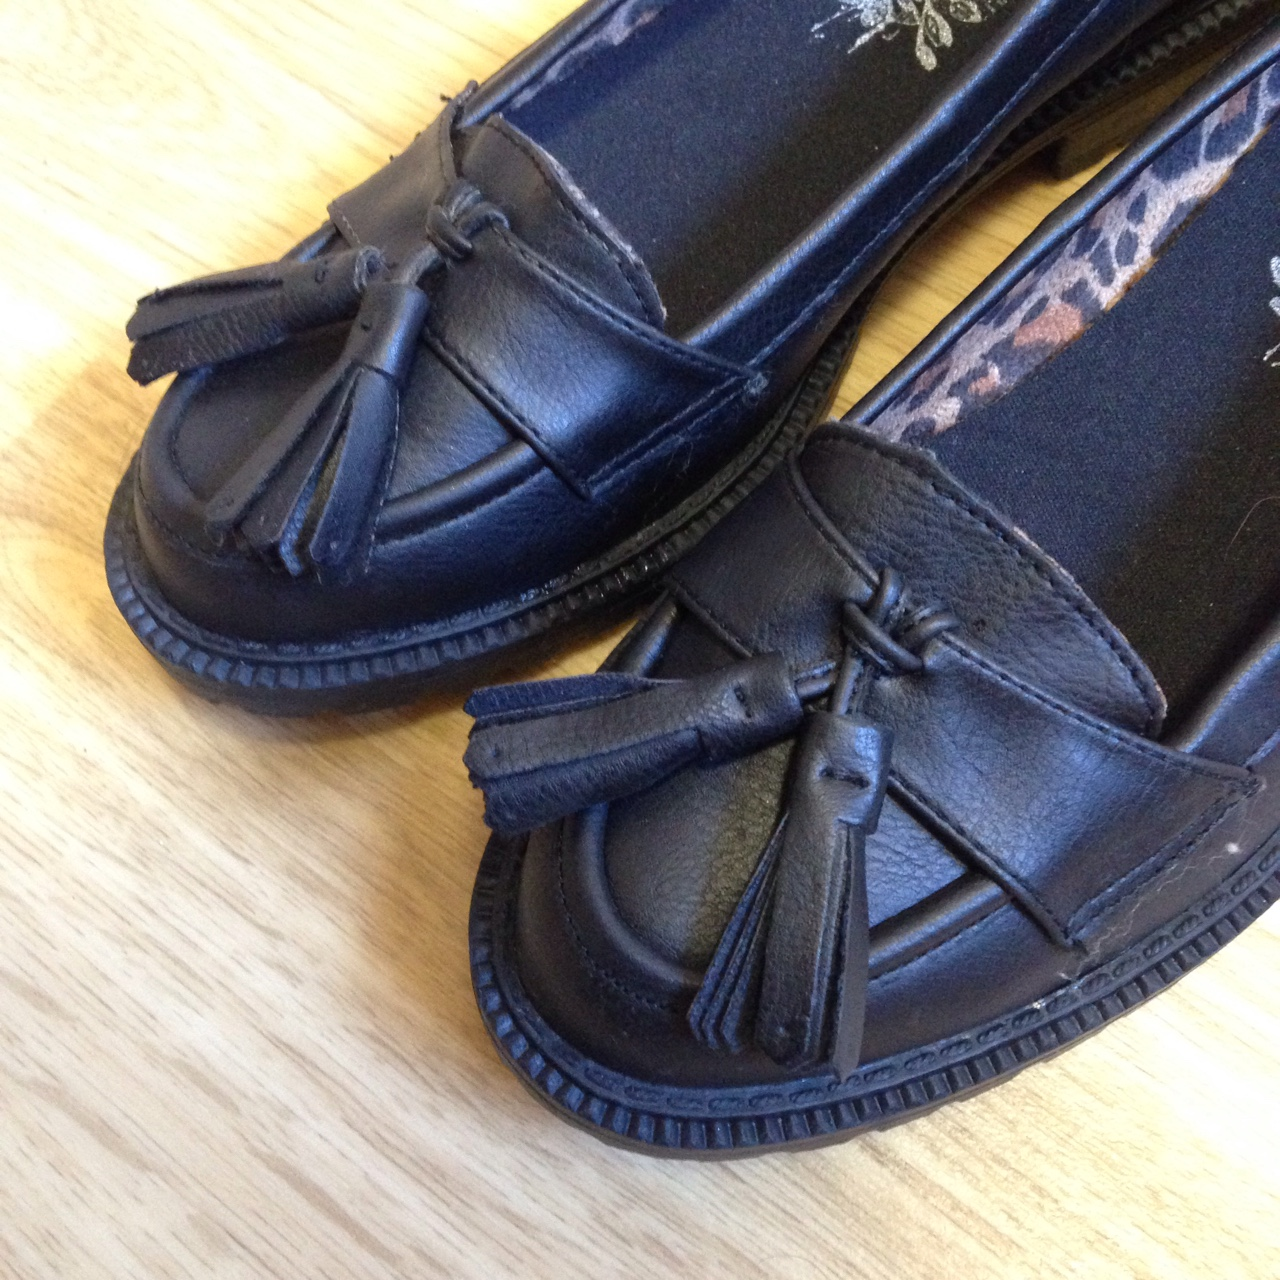 New Look Loafer Style Shoes / Size 4. Only Worn Once So ...